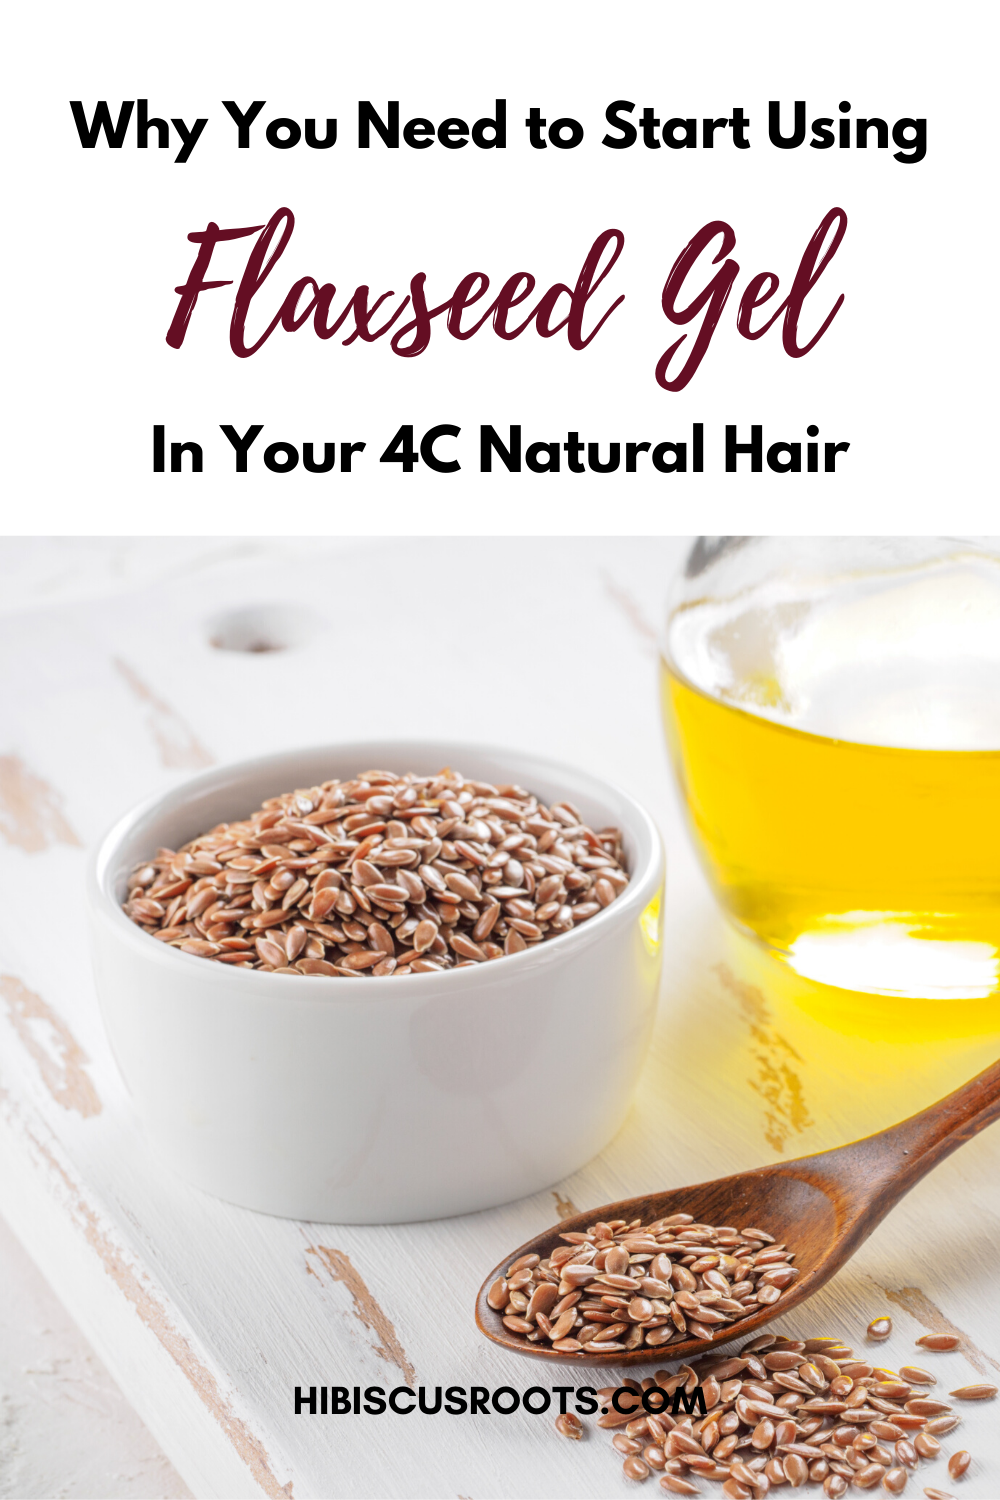 Easy Flaxseed Gel Recipe for Natural Hair - 10 min tops!